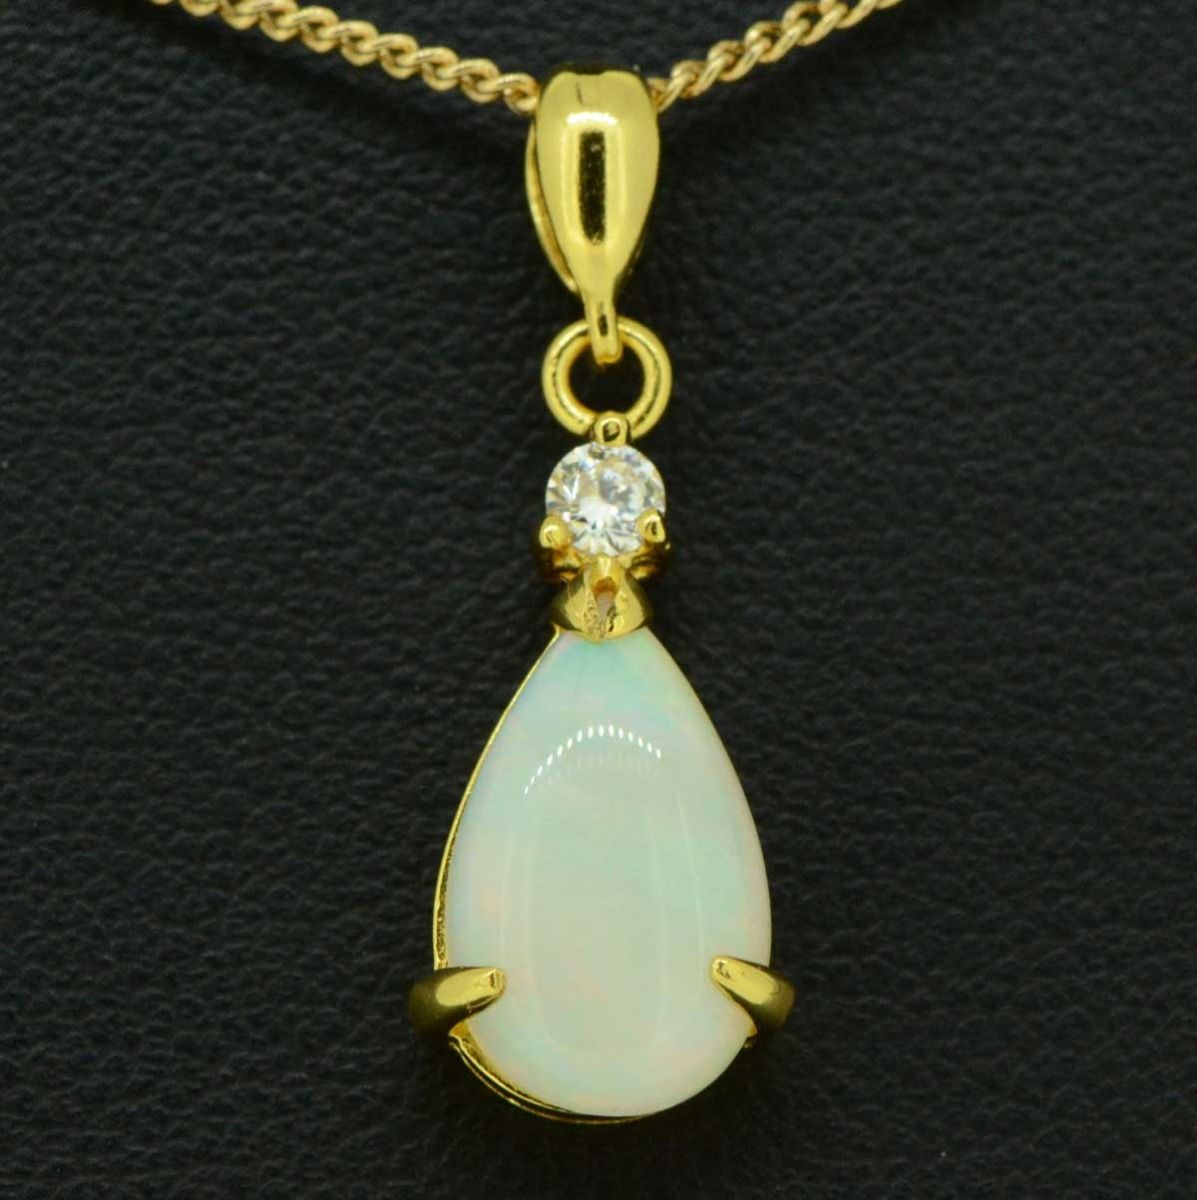 Gold Plated  tear drop solid opal pendant 13mmx9mm